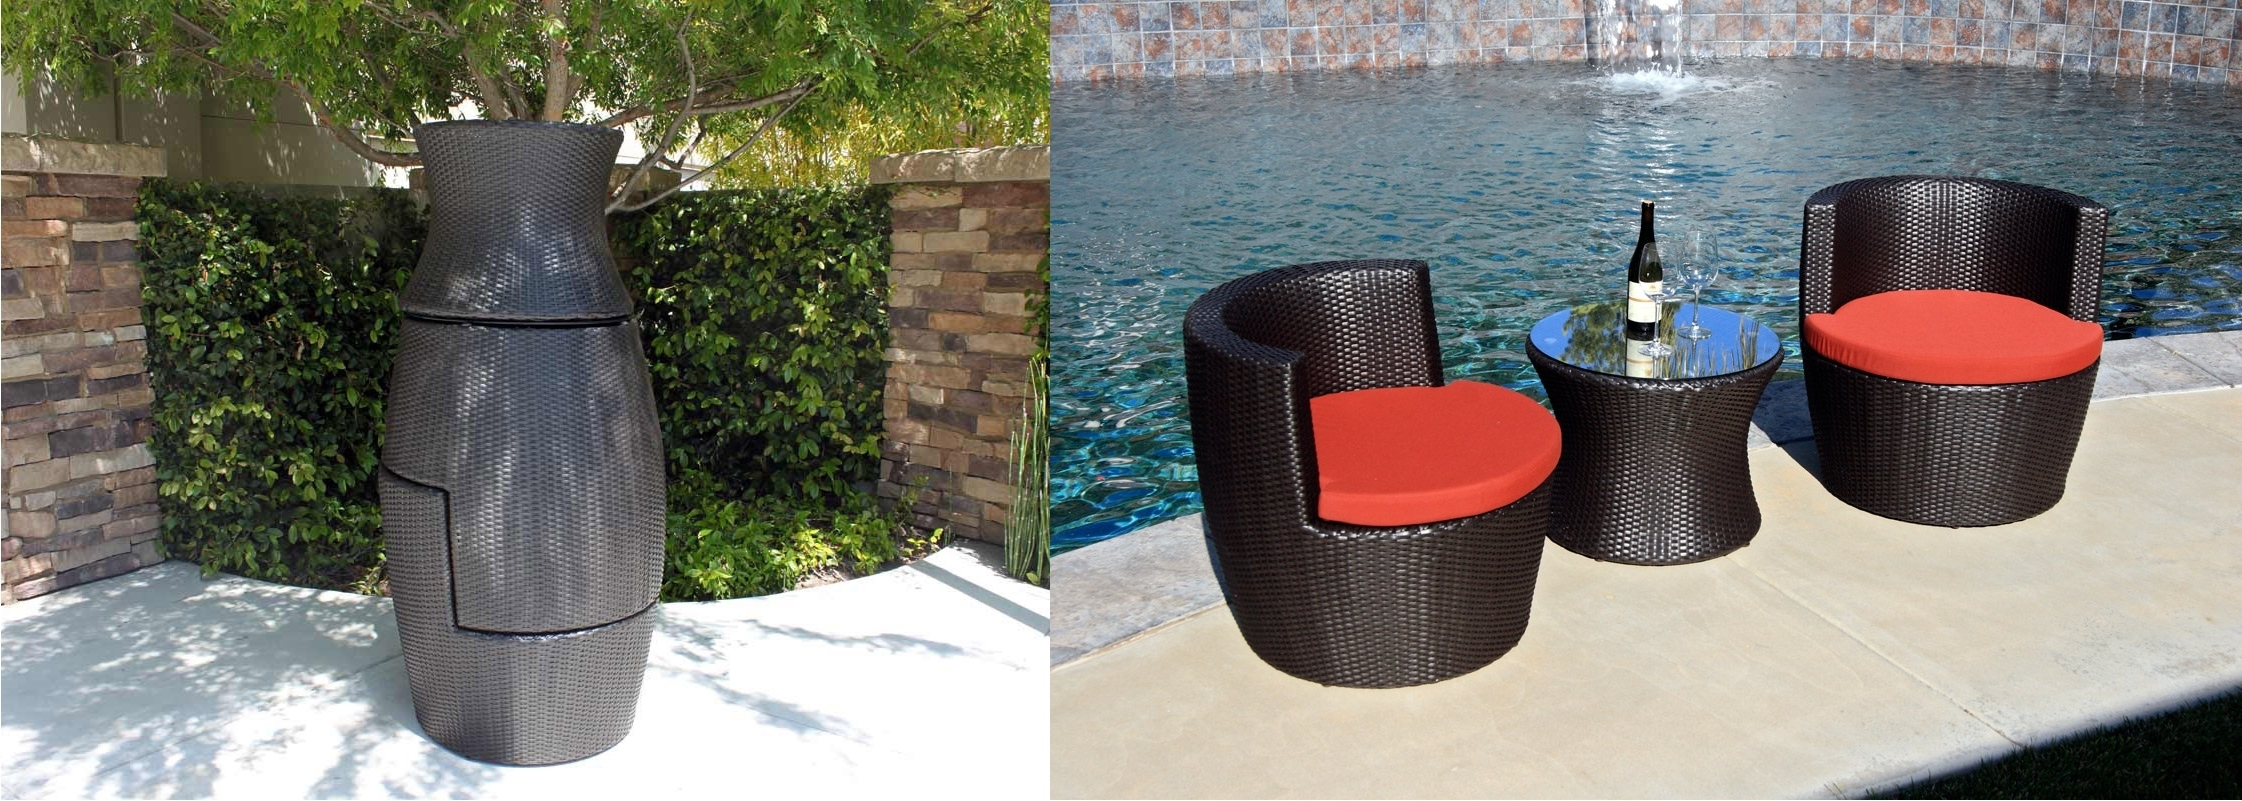 Most Up To Date How To Properly Store Wicker Furniture In The Winter With Regard To Krevco Patio Umbrellas (View 13 of 20)